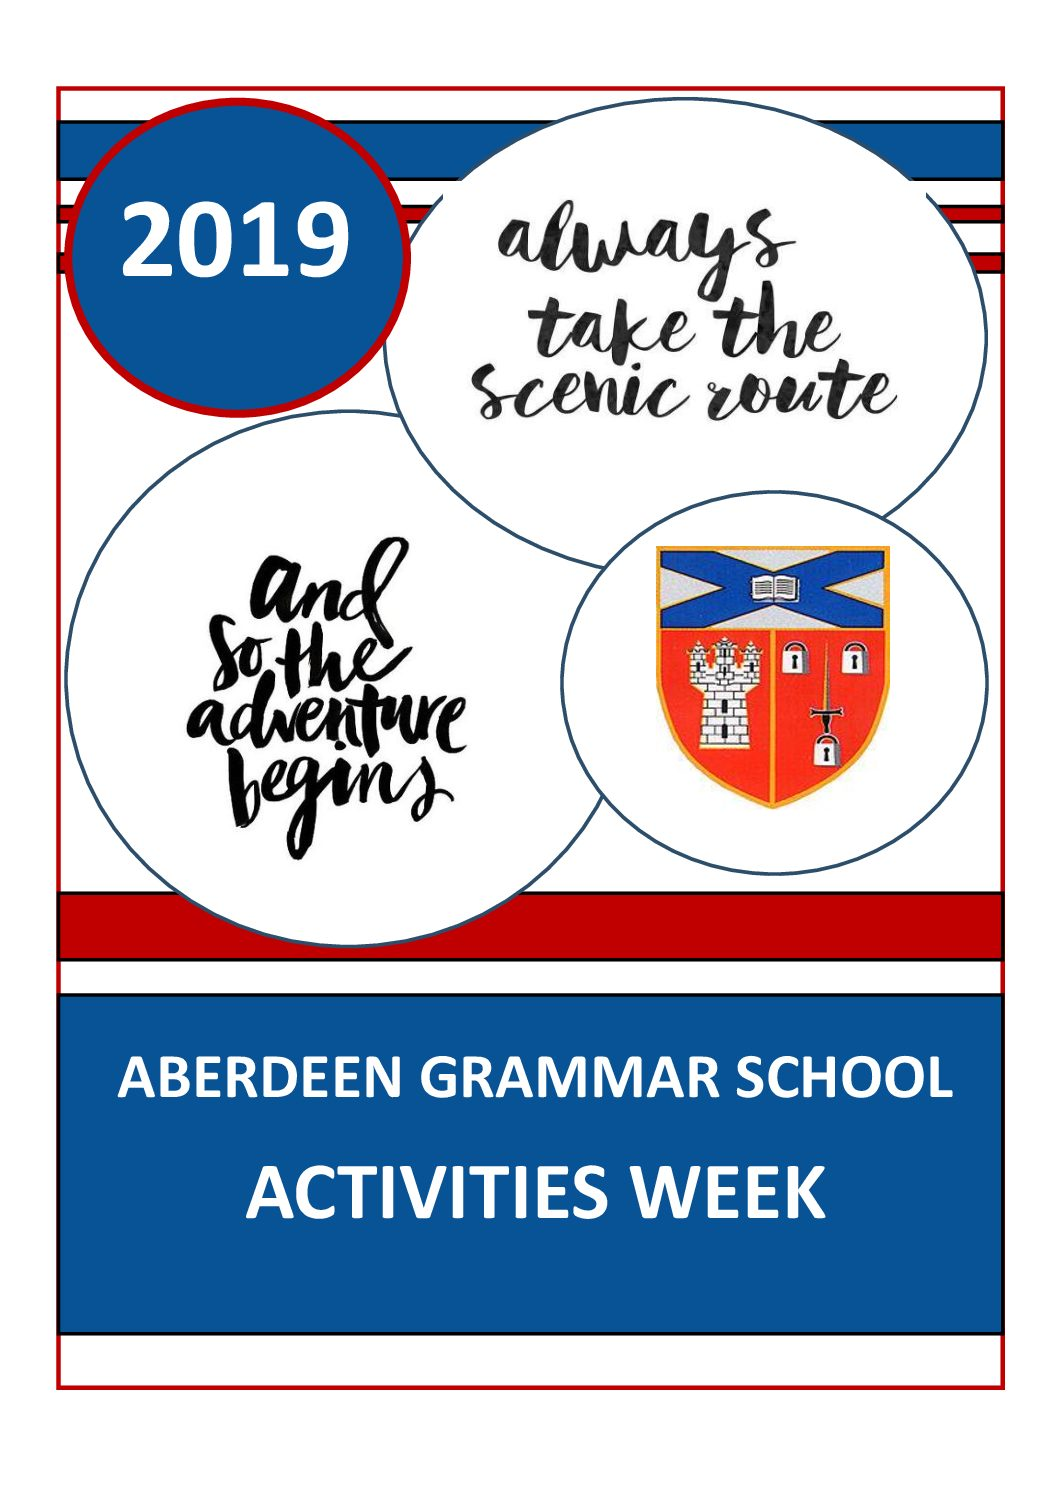 S1/S2 Activities Week  – May 20th until May 24th 2019